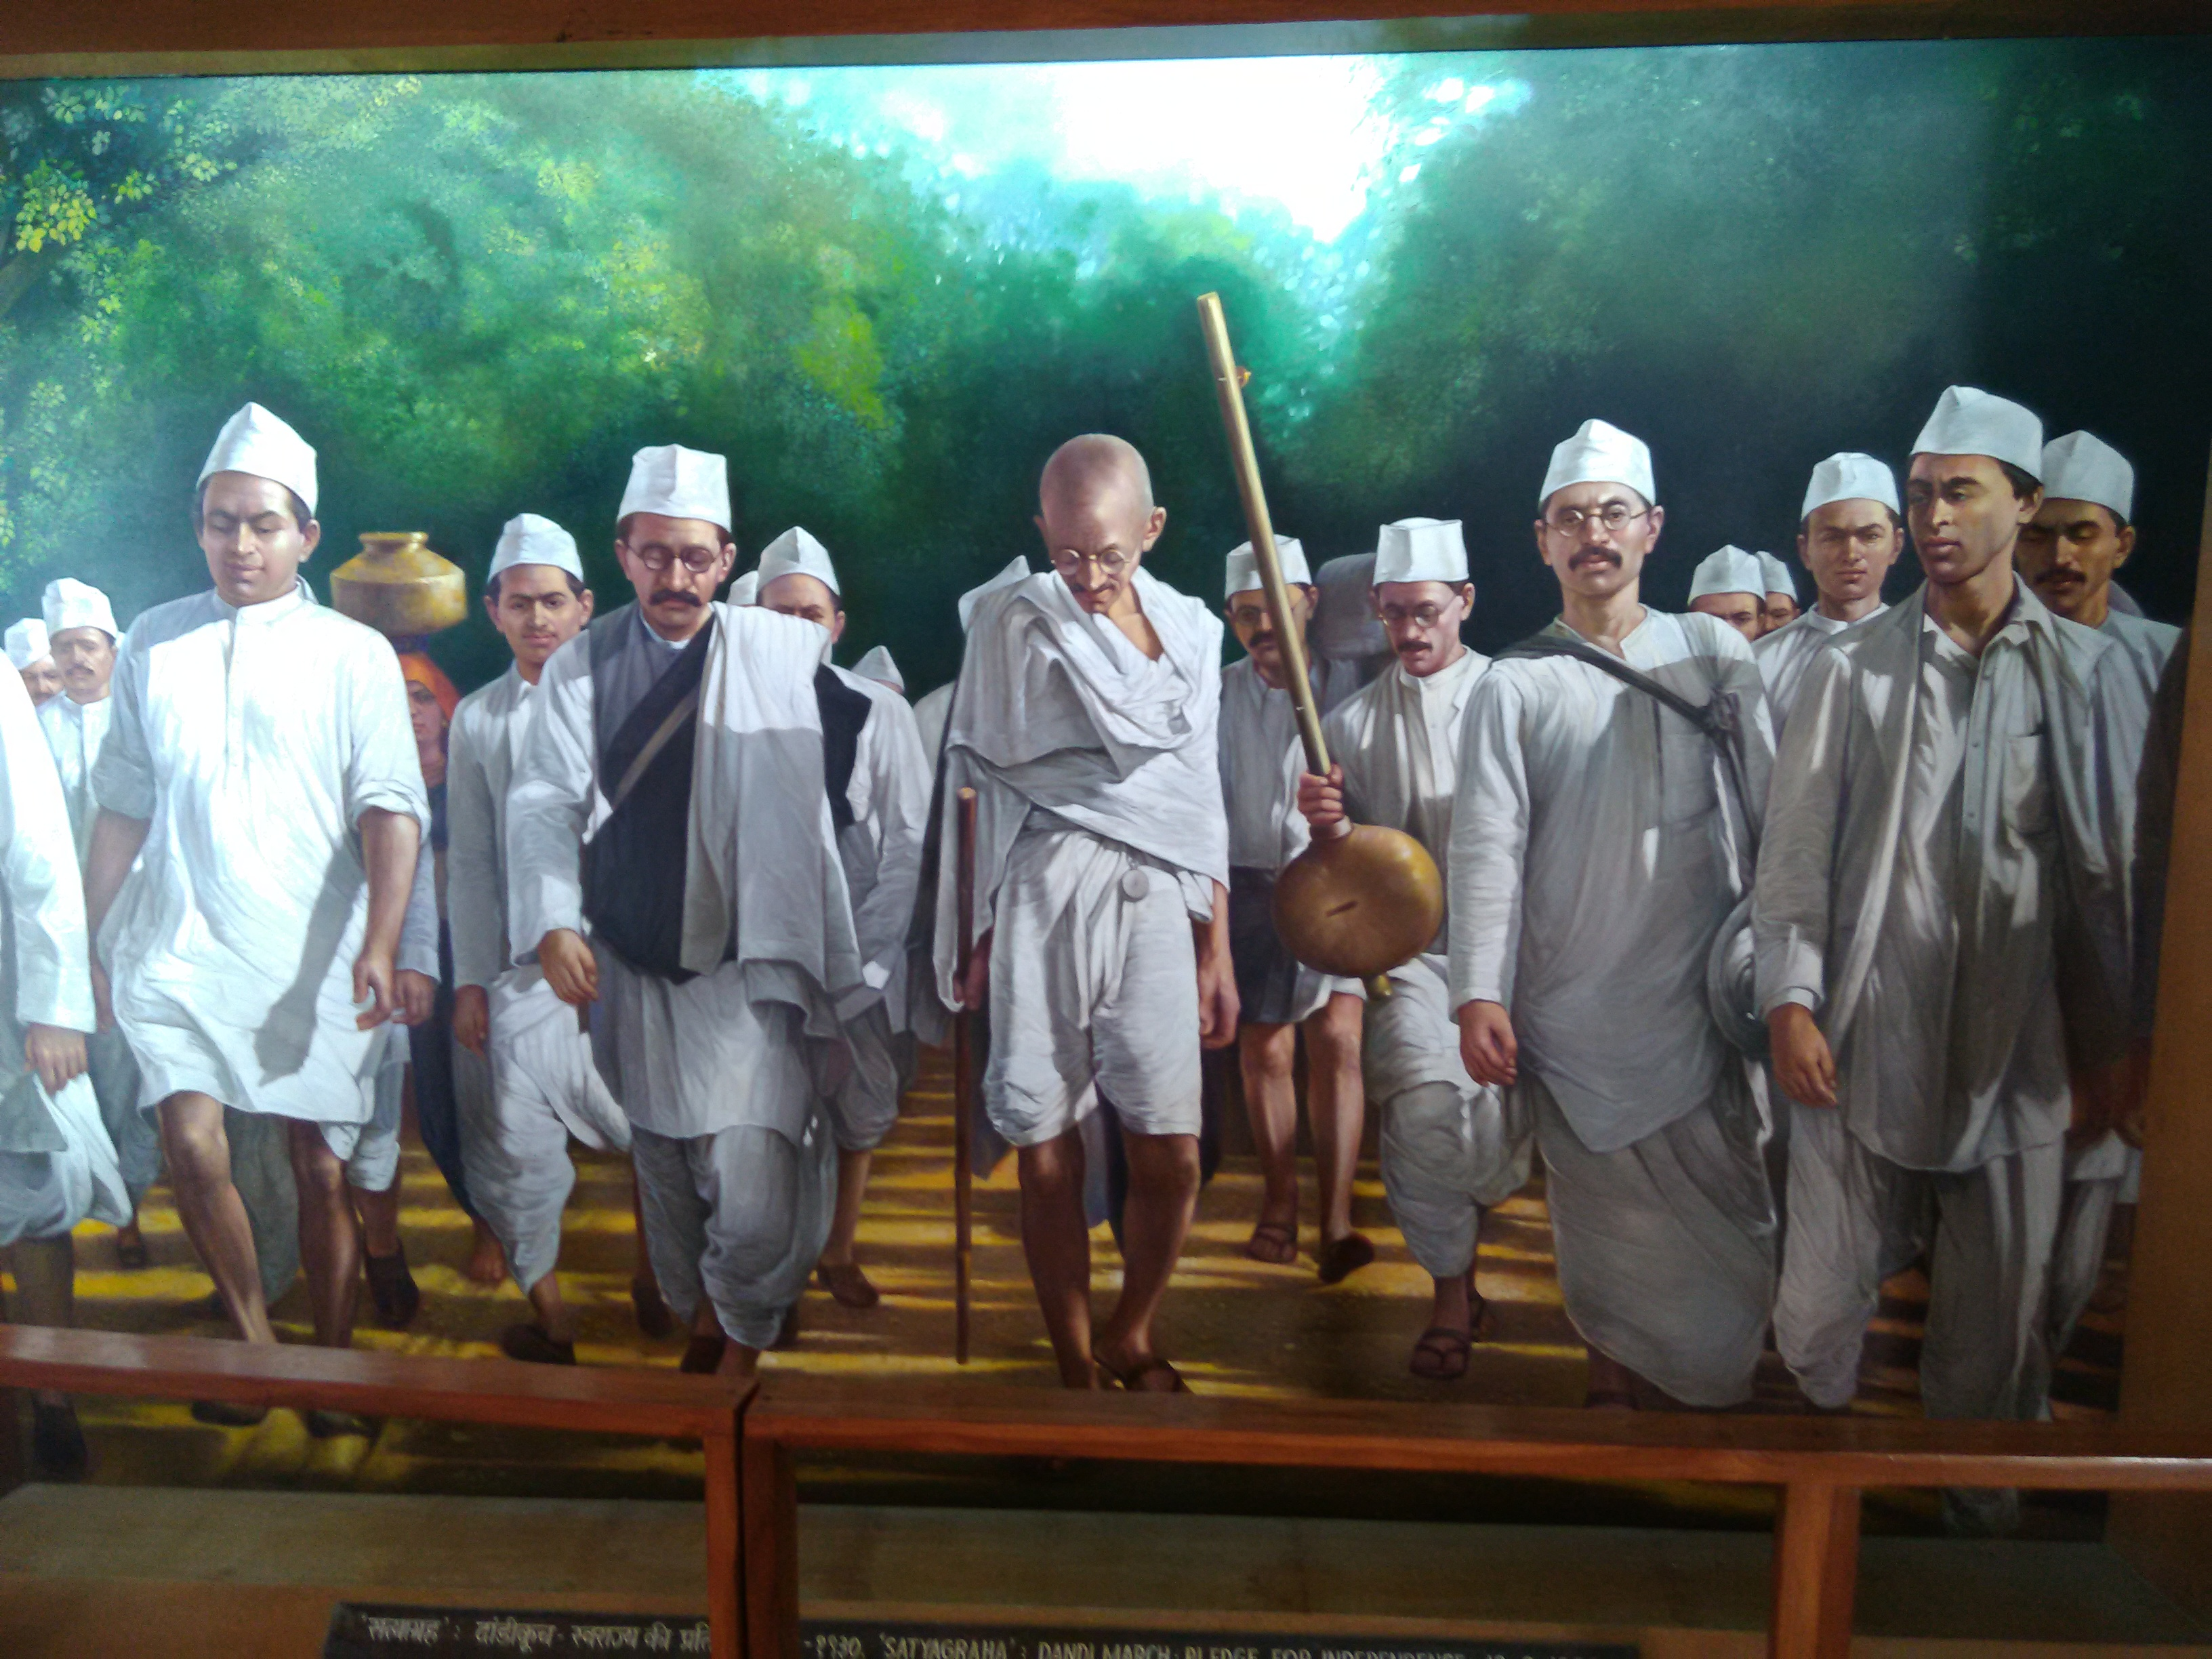 quit india movement End british rule was the sole aim of our nation 75 years ago in the month of  august, 1942 a movement was launched at the bombay session of.